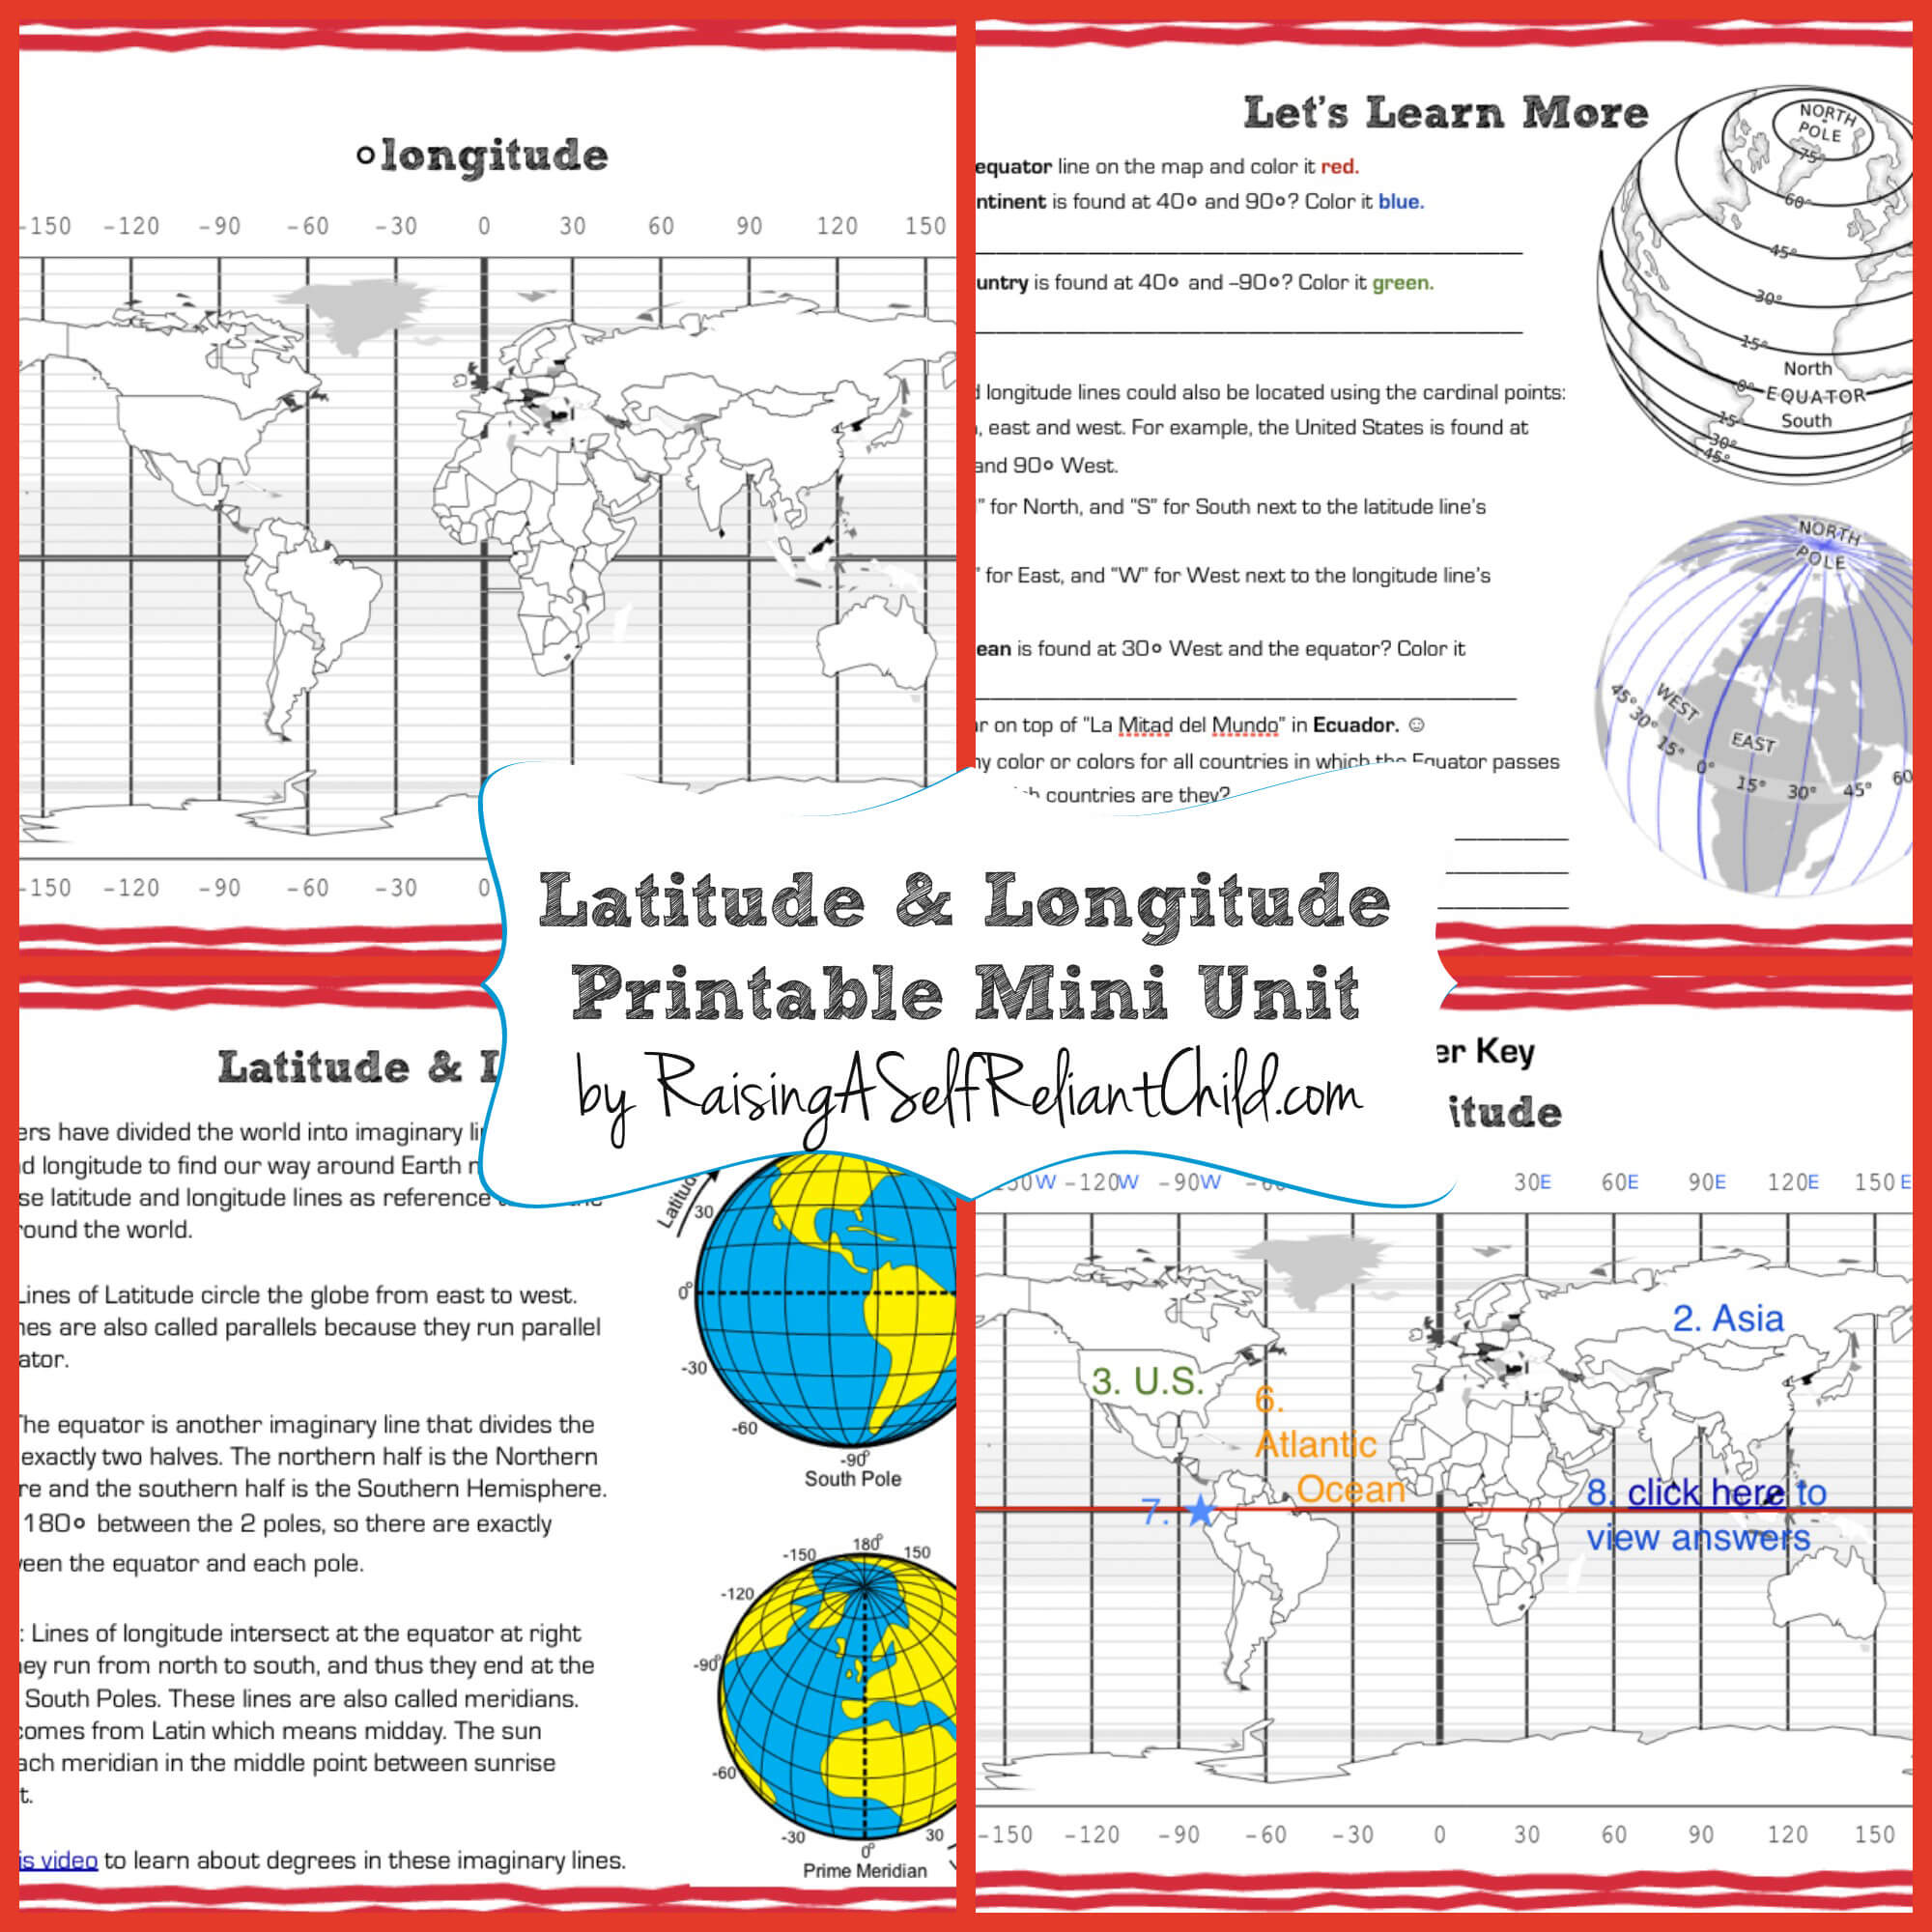 Free Printable Mini Unit Latitude And Longitude For Kids